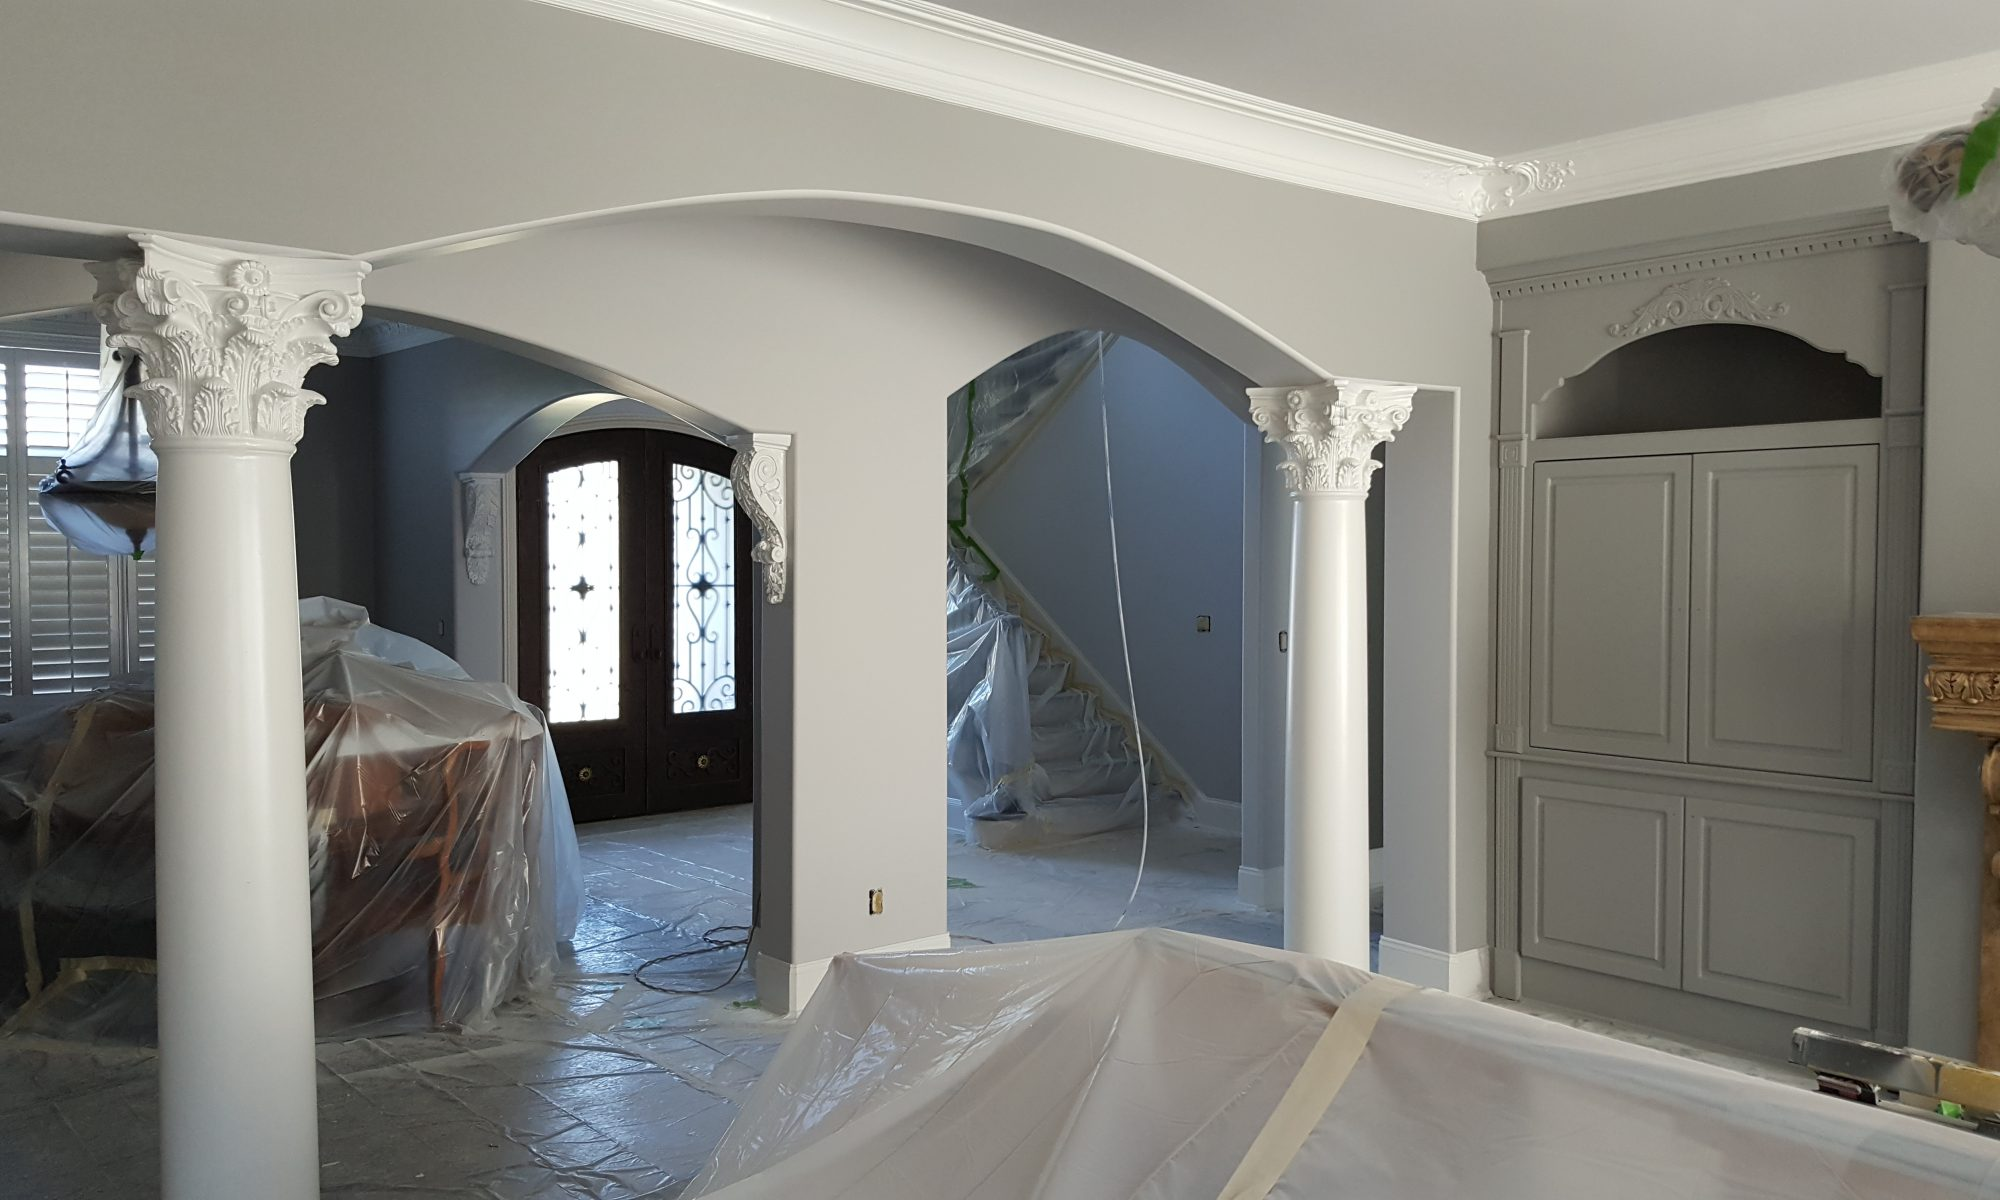 PaintDoctorMD Residential Painting in Hoover, Mountain Brook